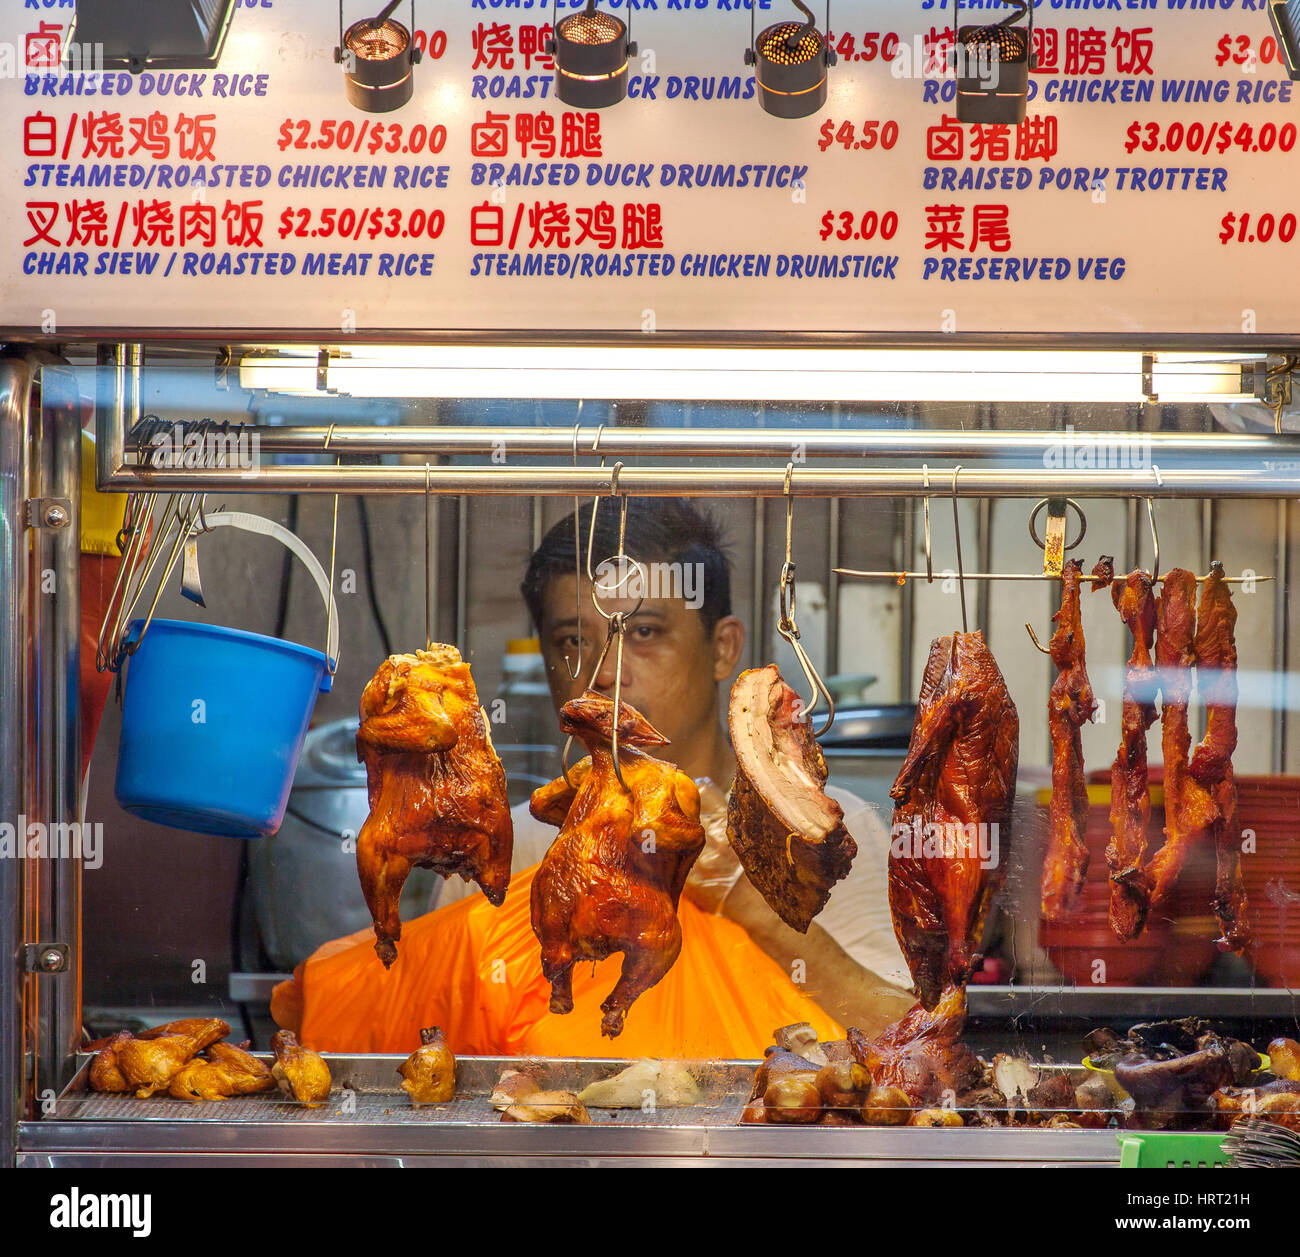 fried chicken, eating stalls, Indian fast foods, district Little India, Singapore, Asia, Singapore Stock Photo